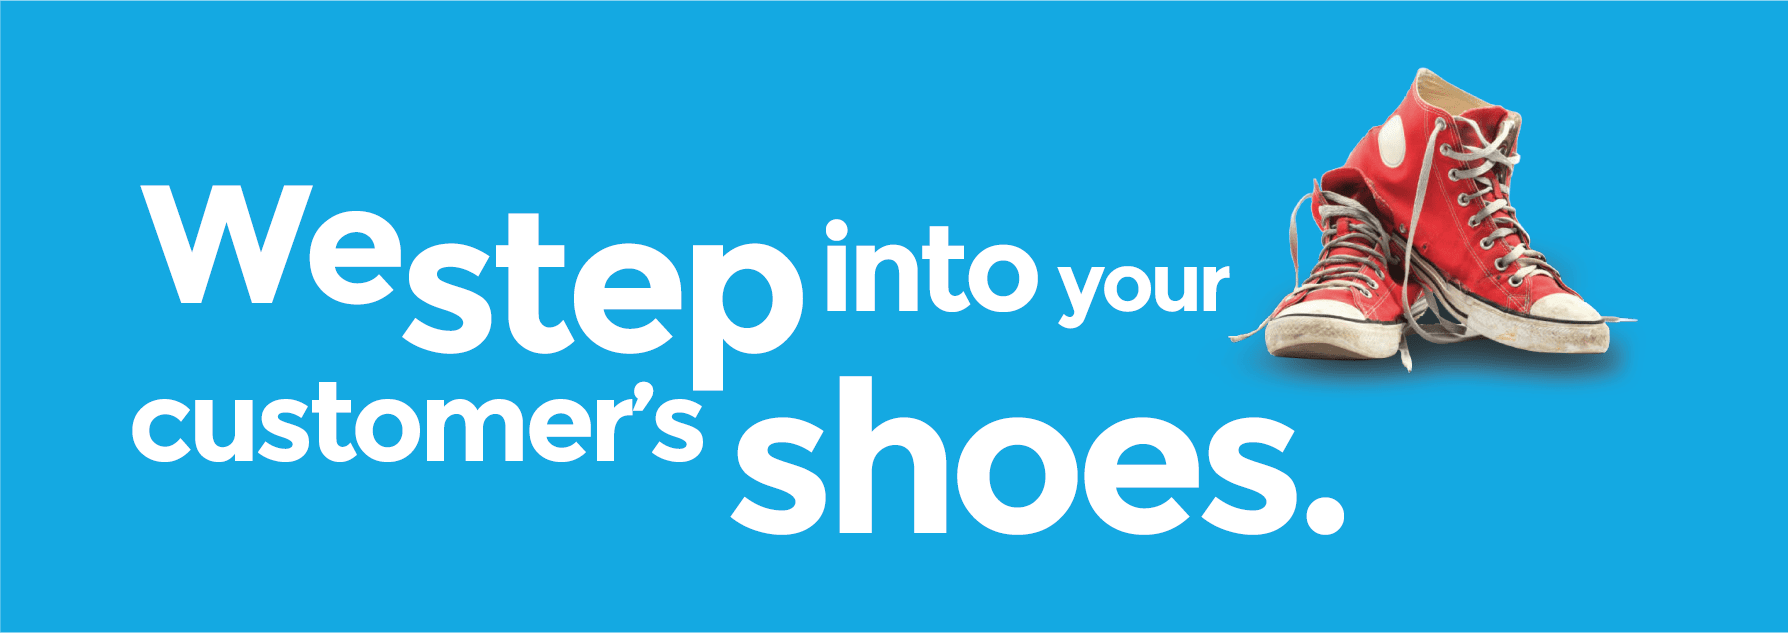 We step into your customer's shoes